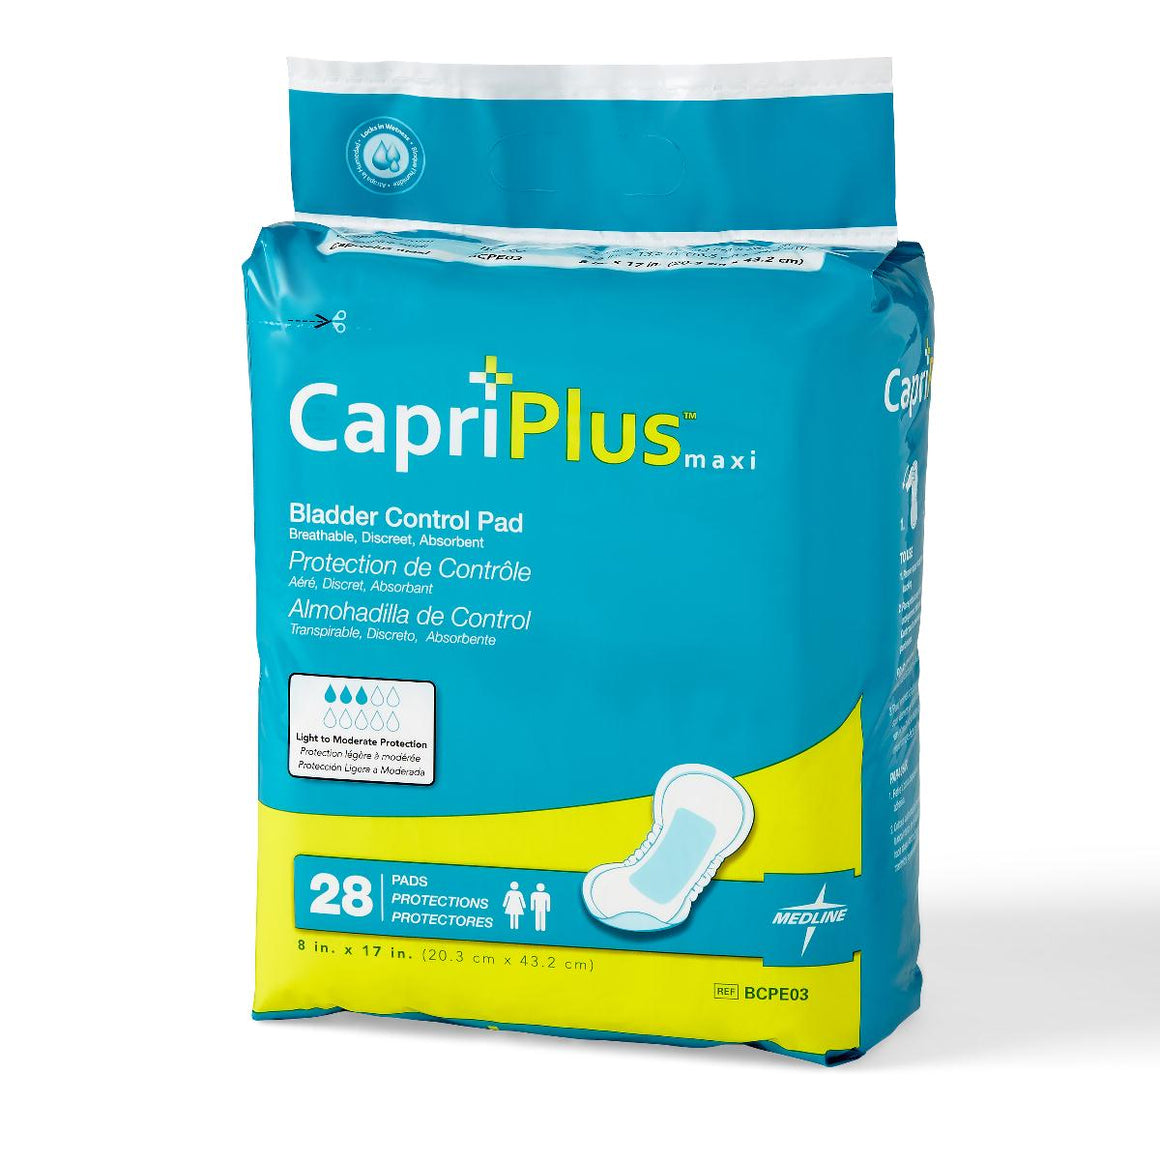 Capri Plus Bladder Control Pads